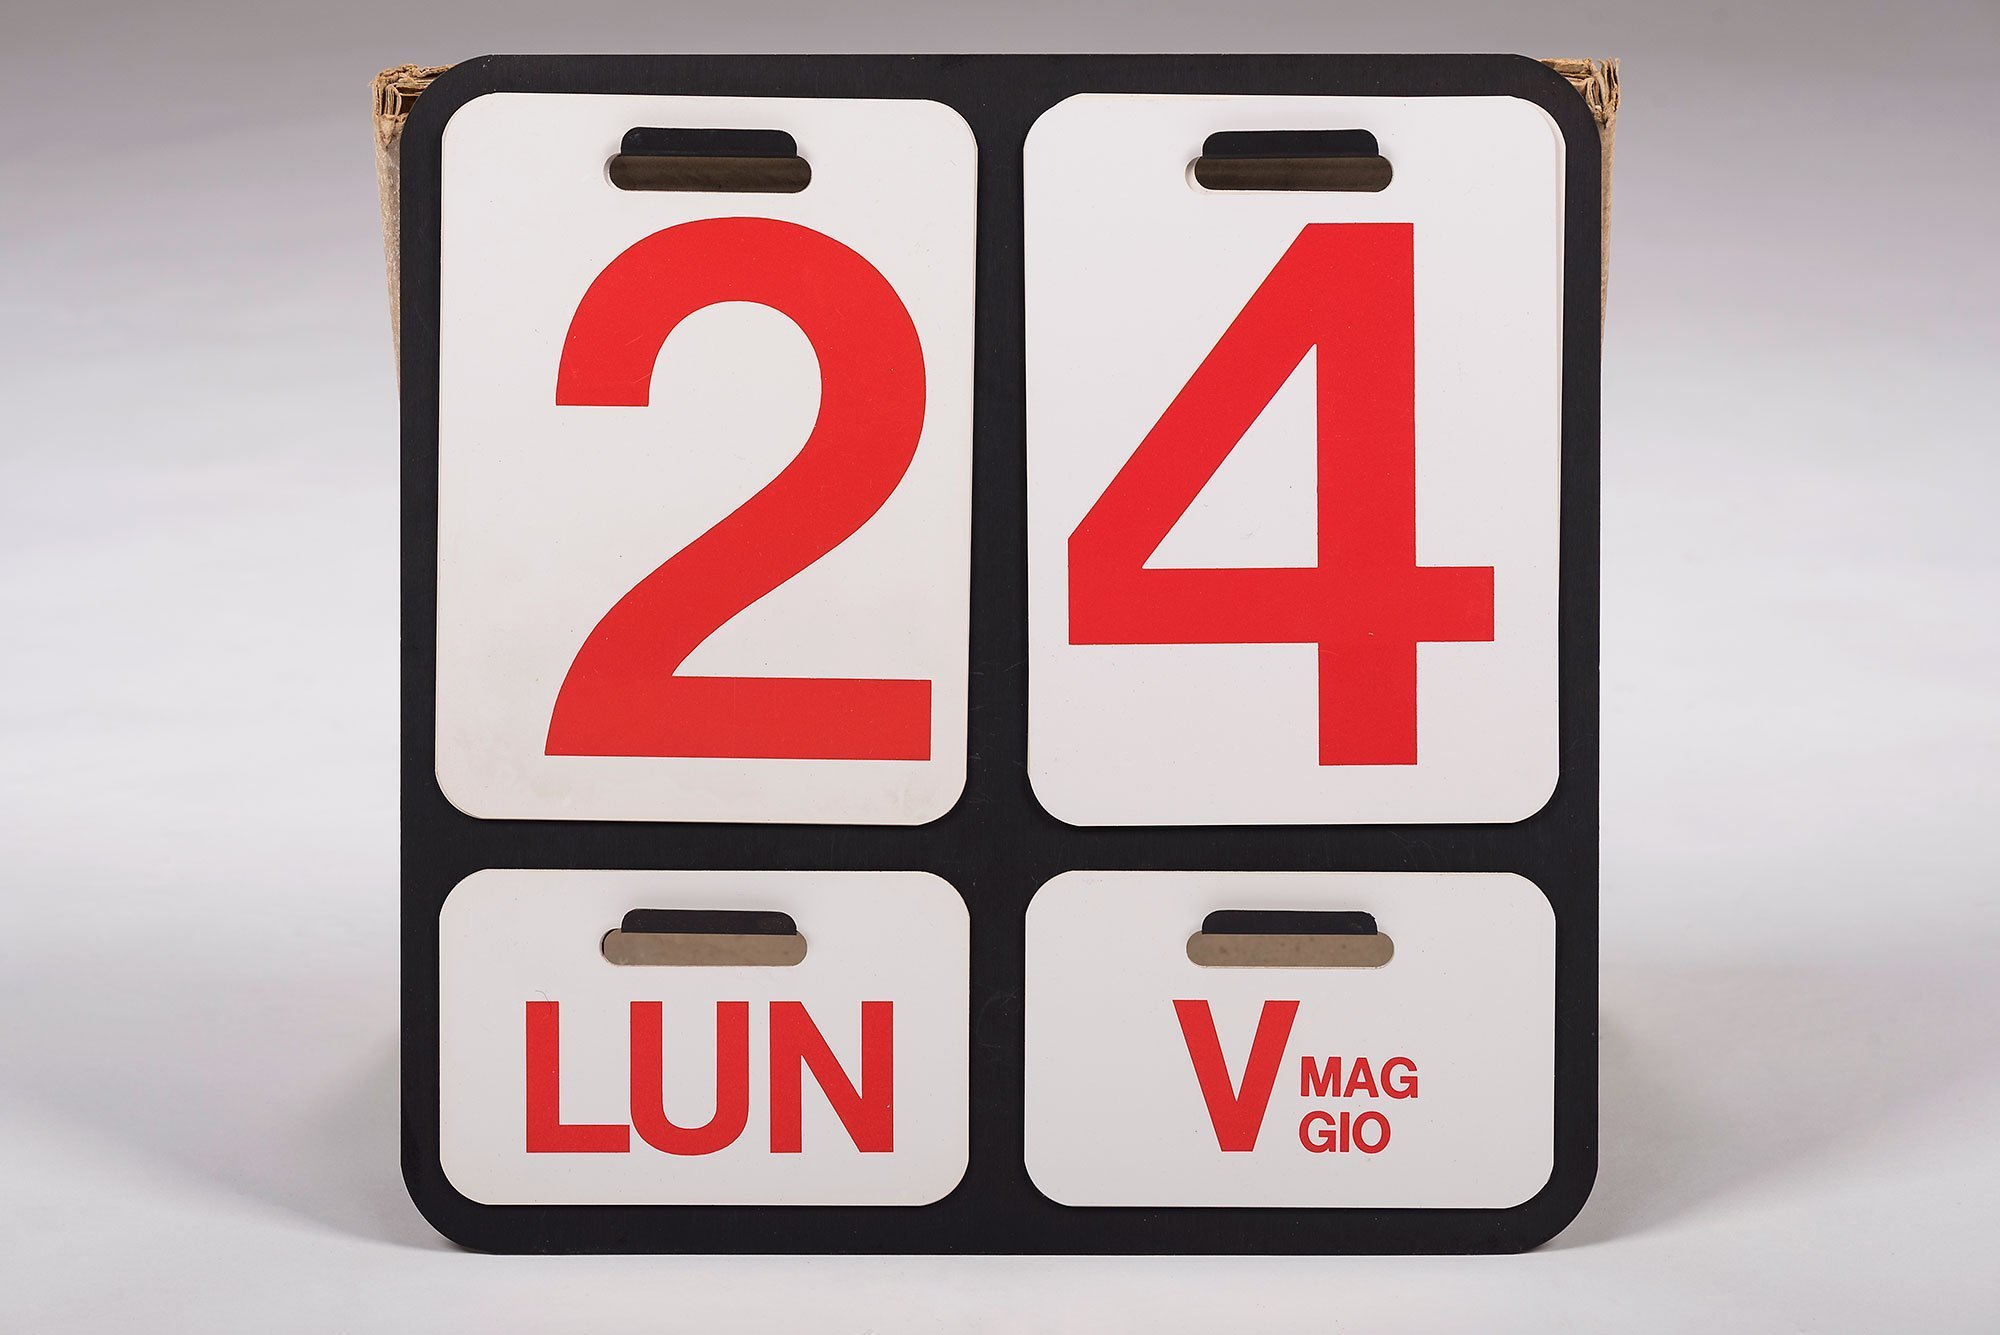 Wall calendar - comprised of anodized aluminum back plate and white PVC-sheets with numbers and month and day abbreviation printed in red.